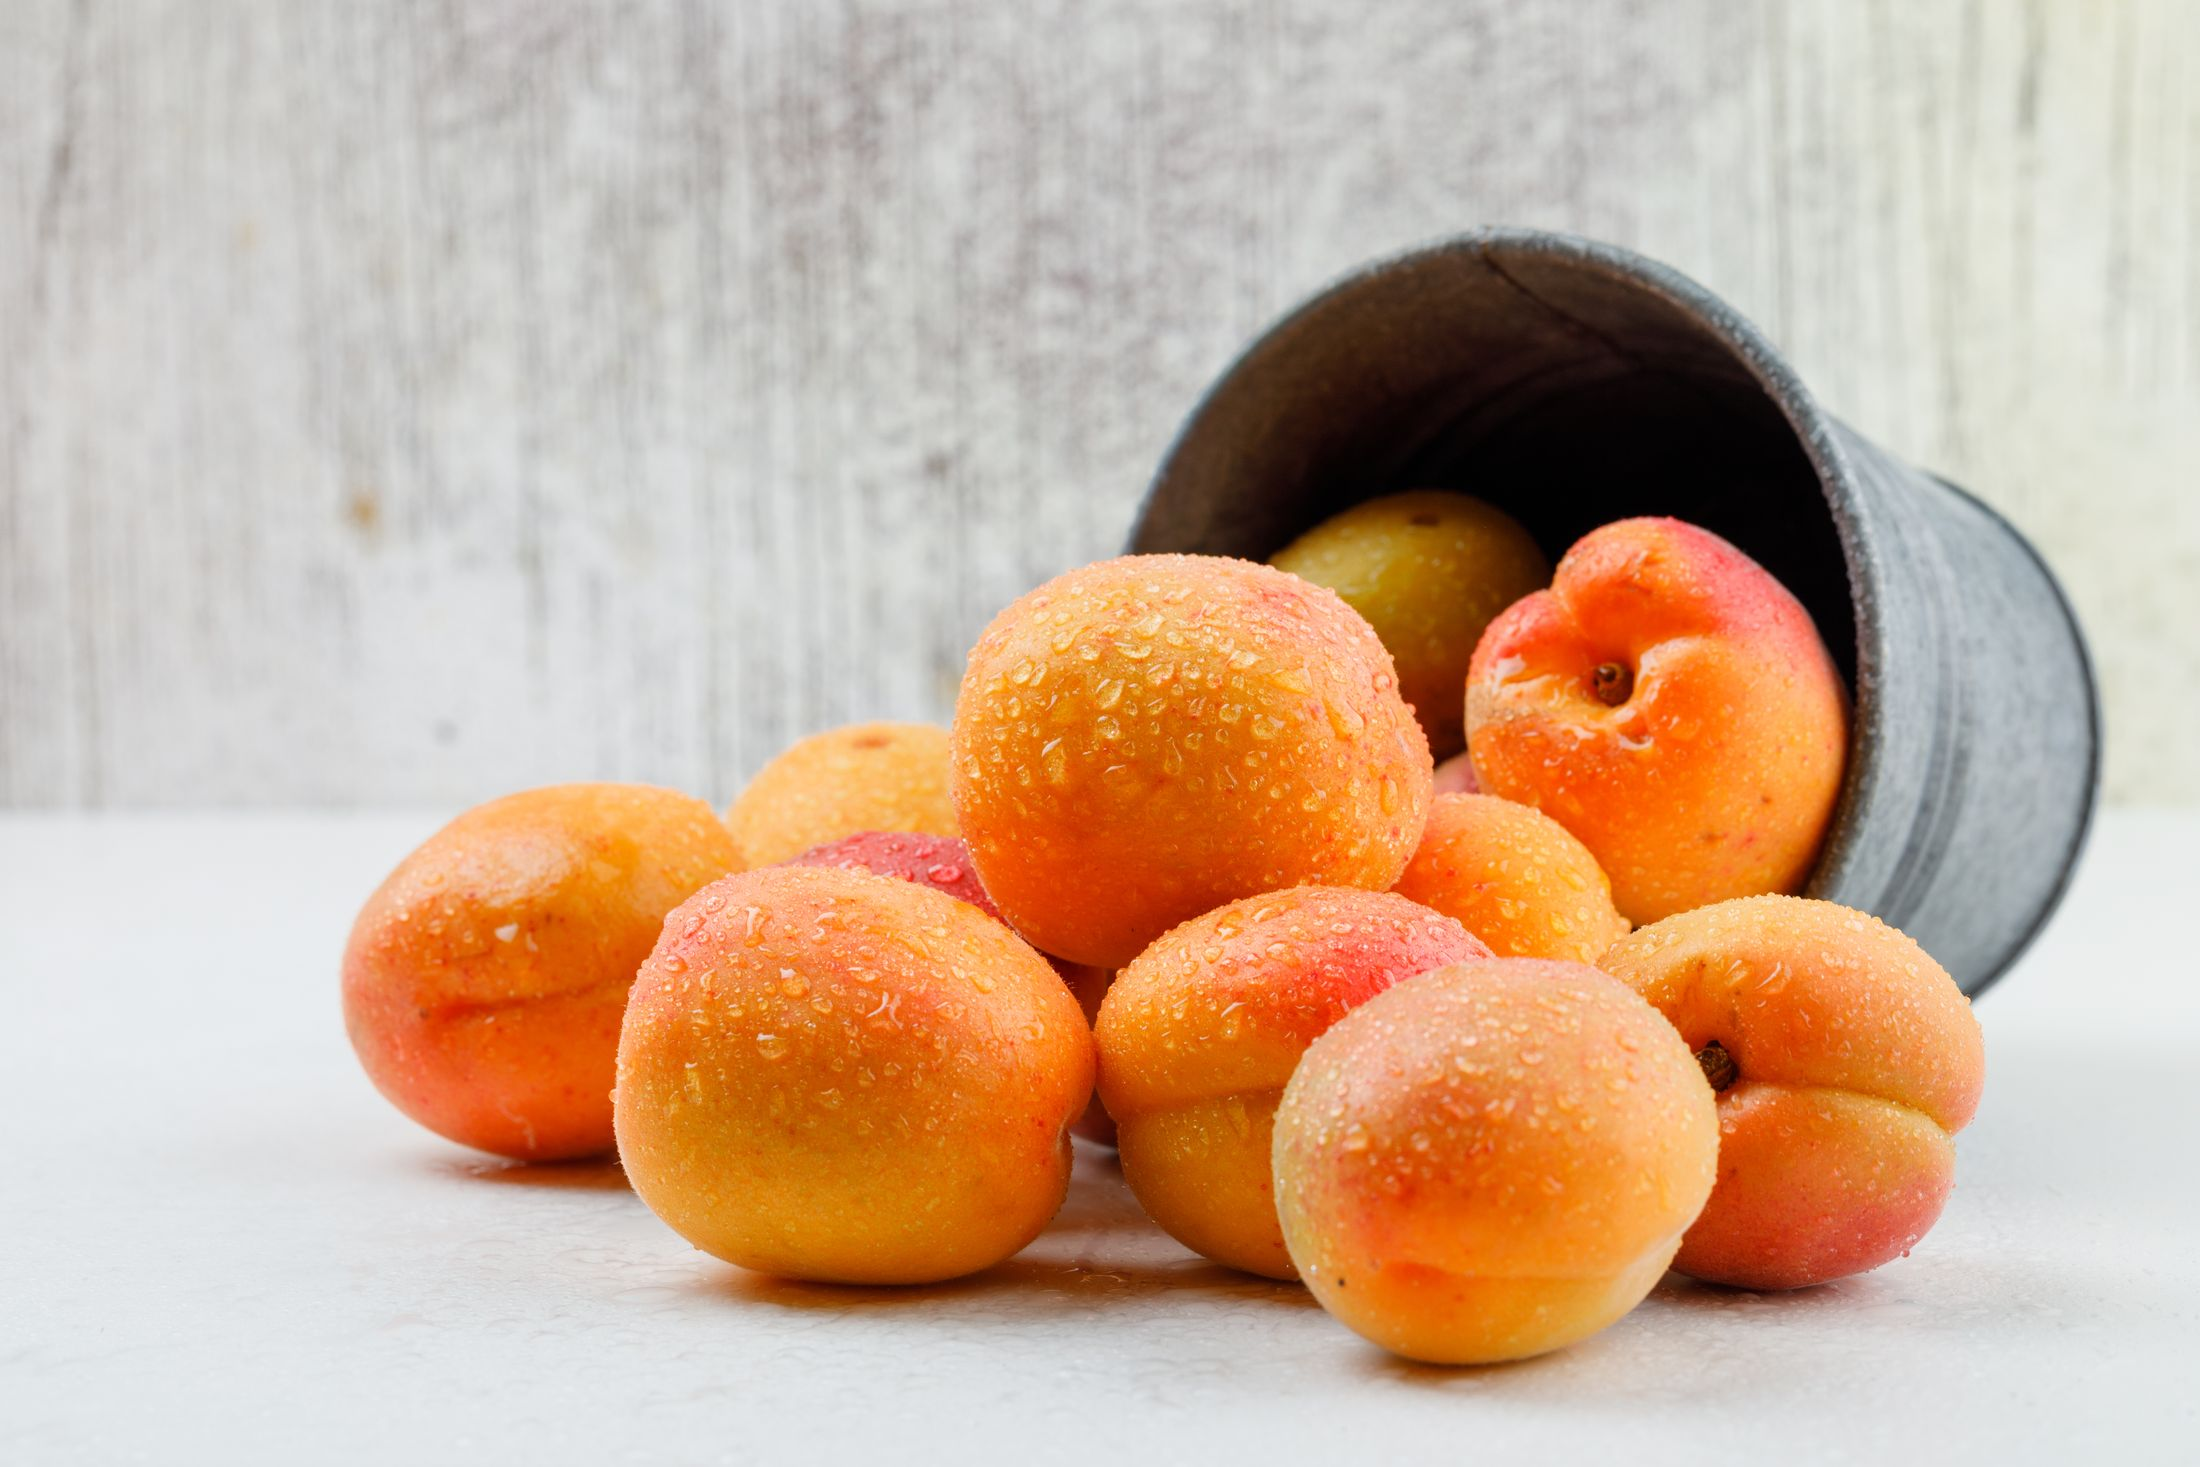 Natural apricots in a mini bucket on white and grunge background. side view.